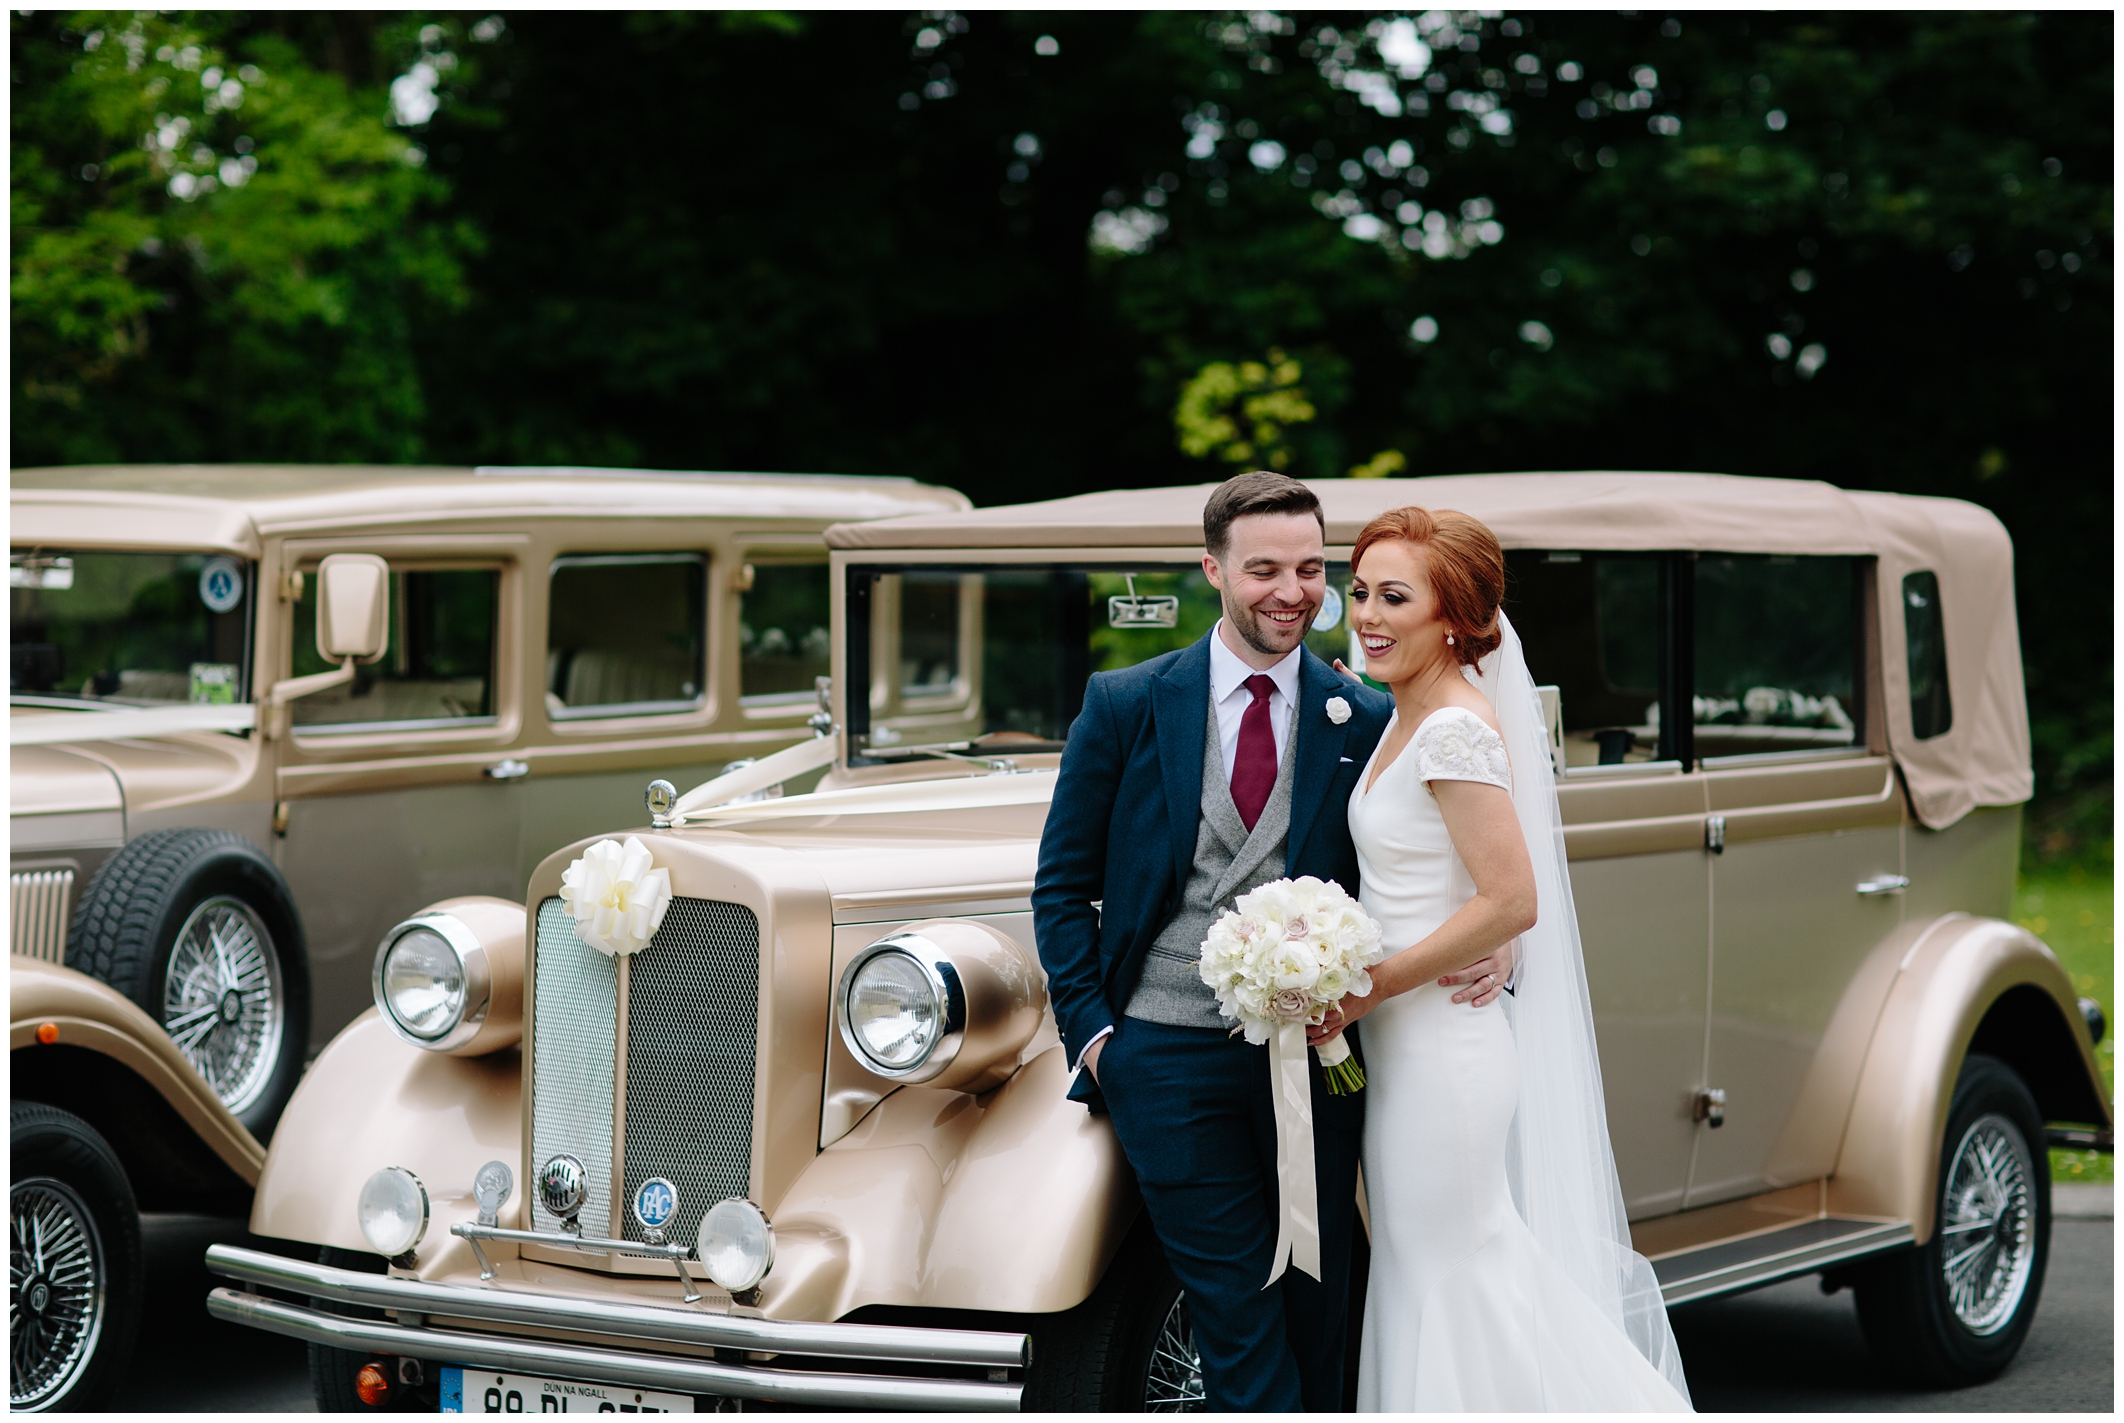 sinead_emmet_farnham_estate_wedding_jude_browne_photography_0085.jpg